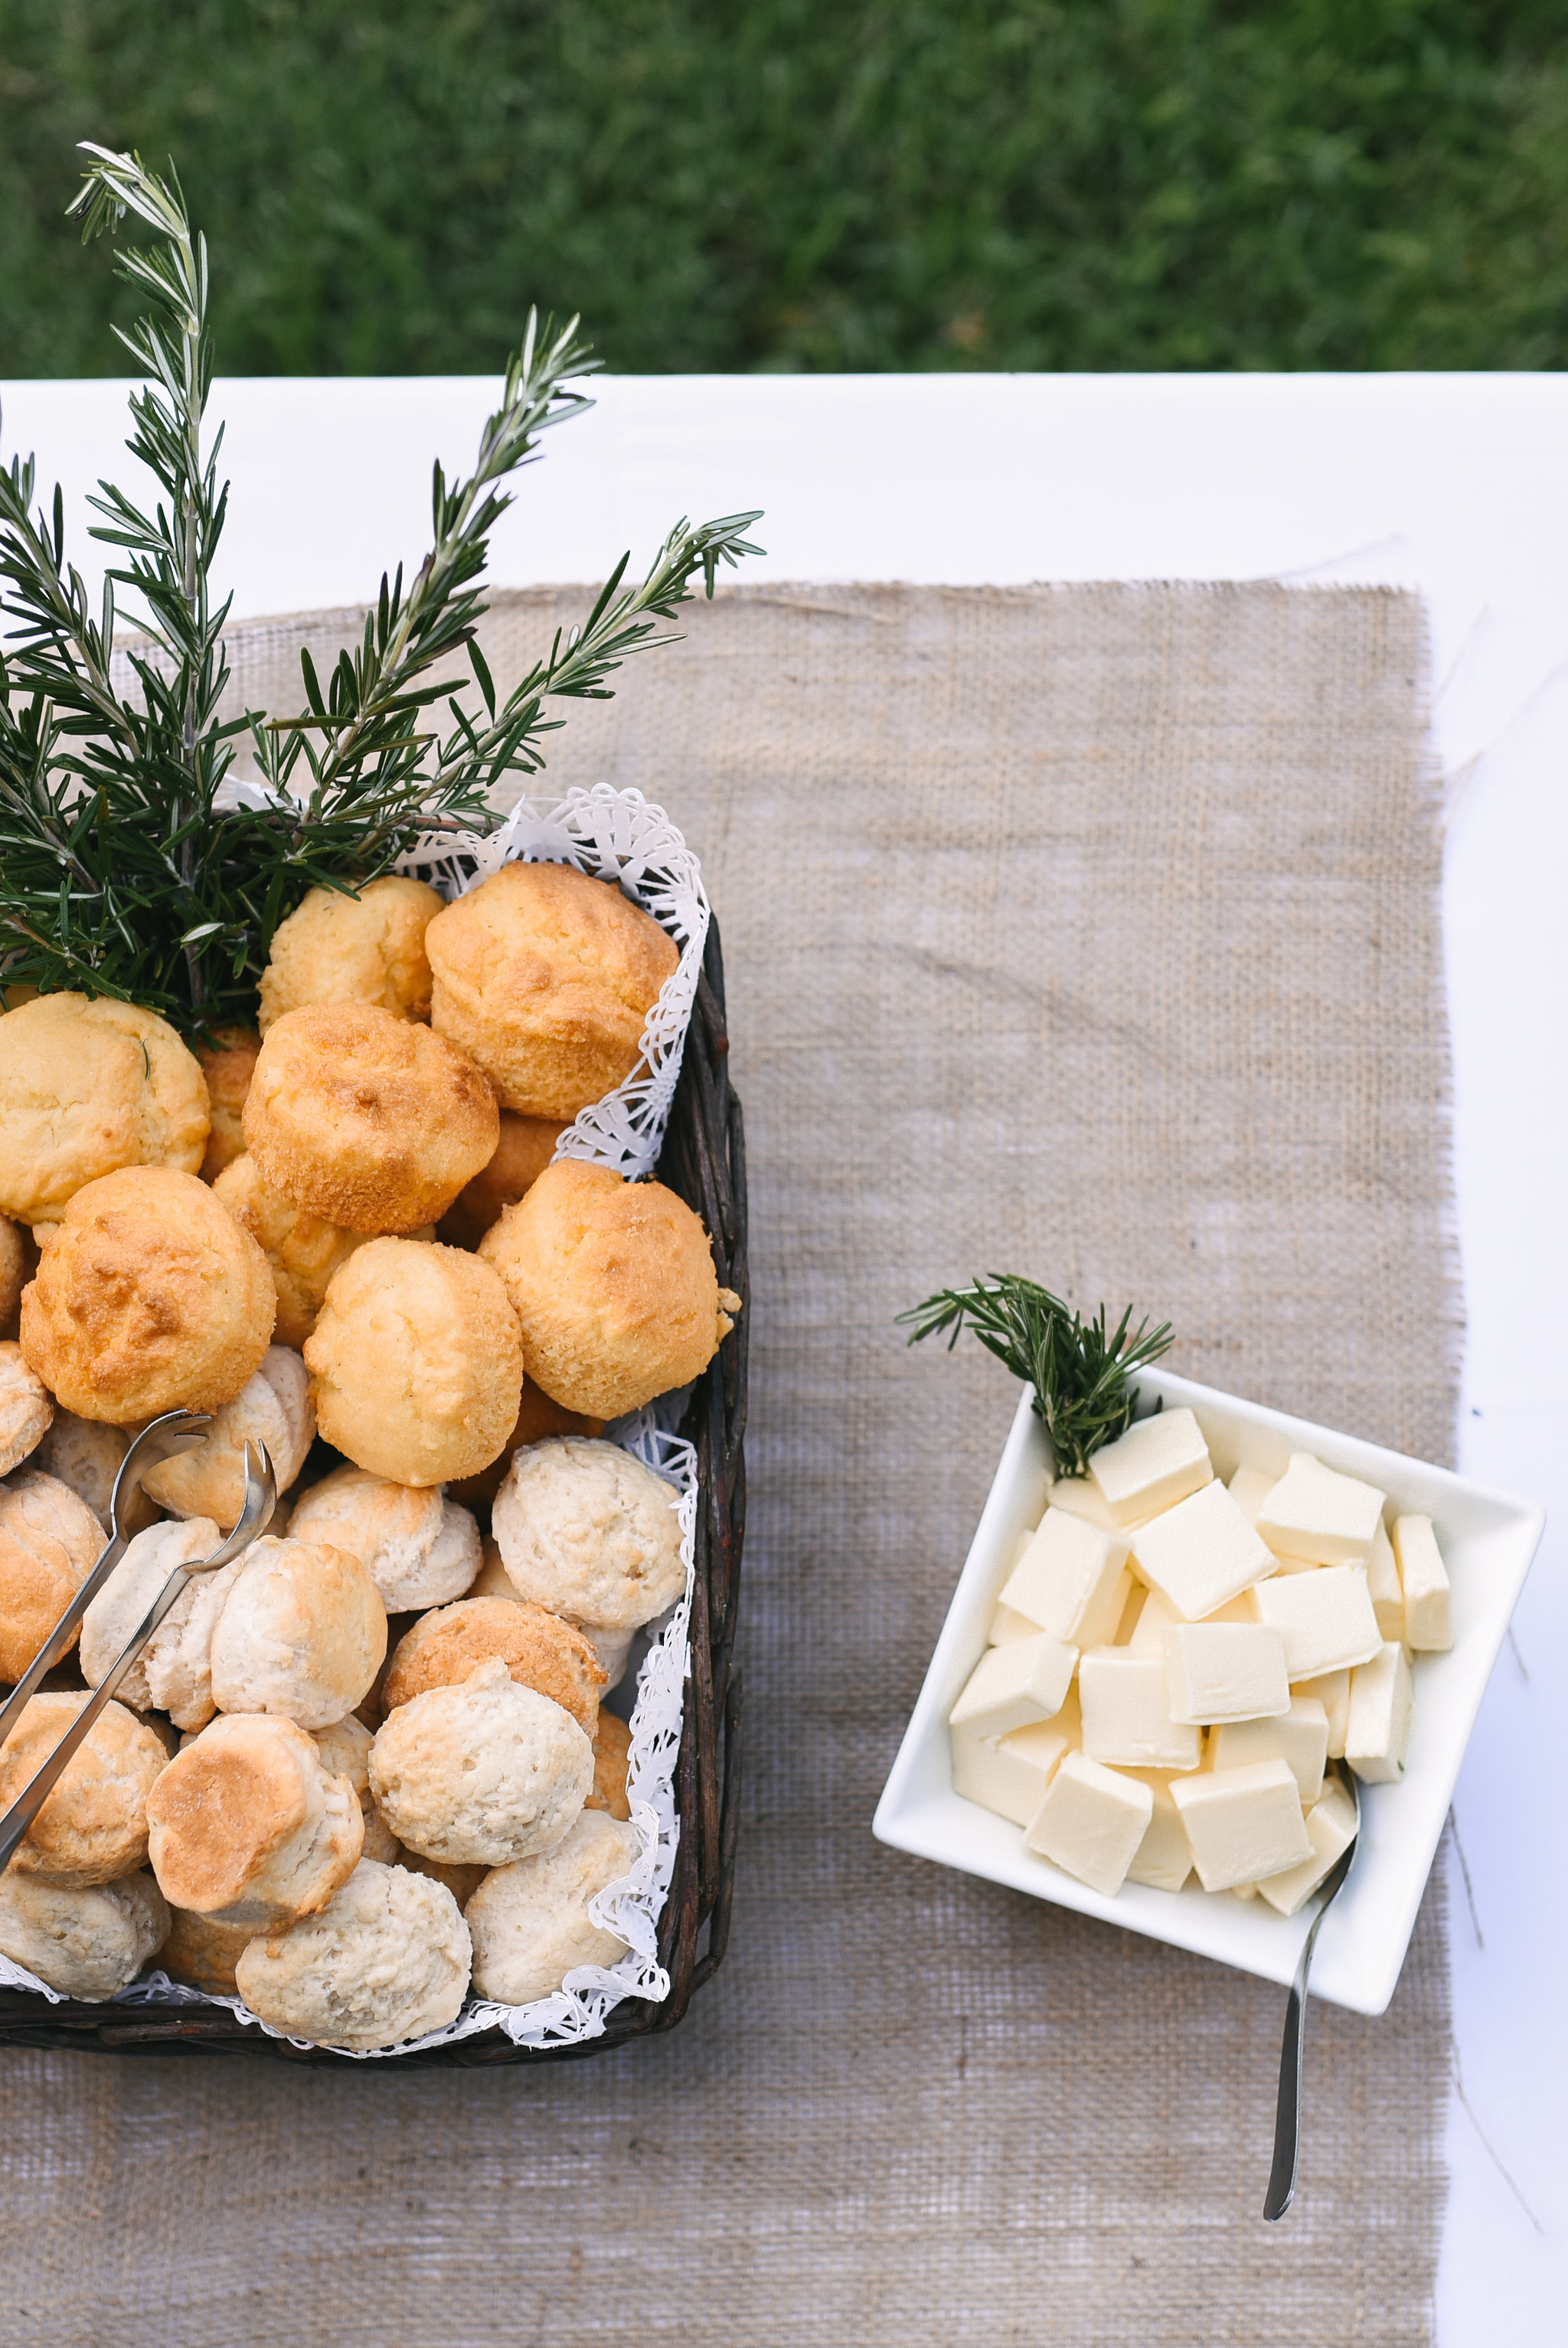 Maryland, Eastern Shore, Baltimore Wedding Photographer, Romantic, Boho, Backyard Wedding, Nature, Homestyle, Food at Reception, Biscuits and Butter, Ken's Creative Kitchen